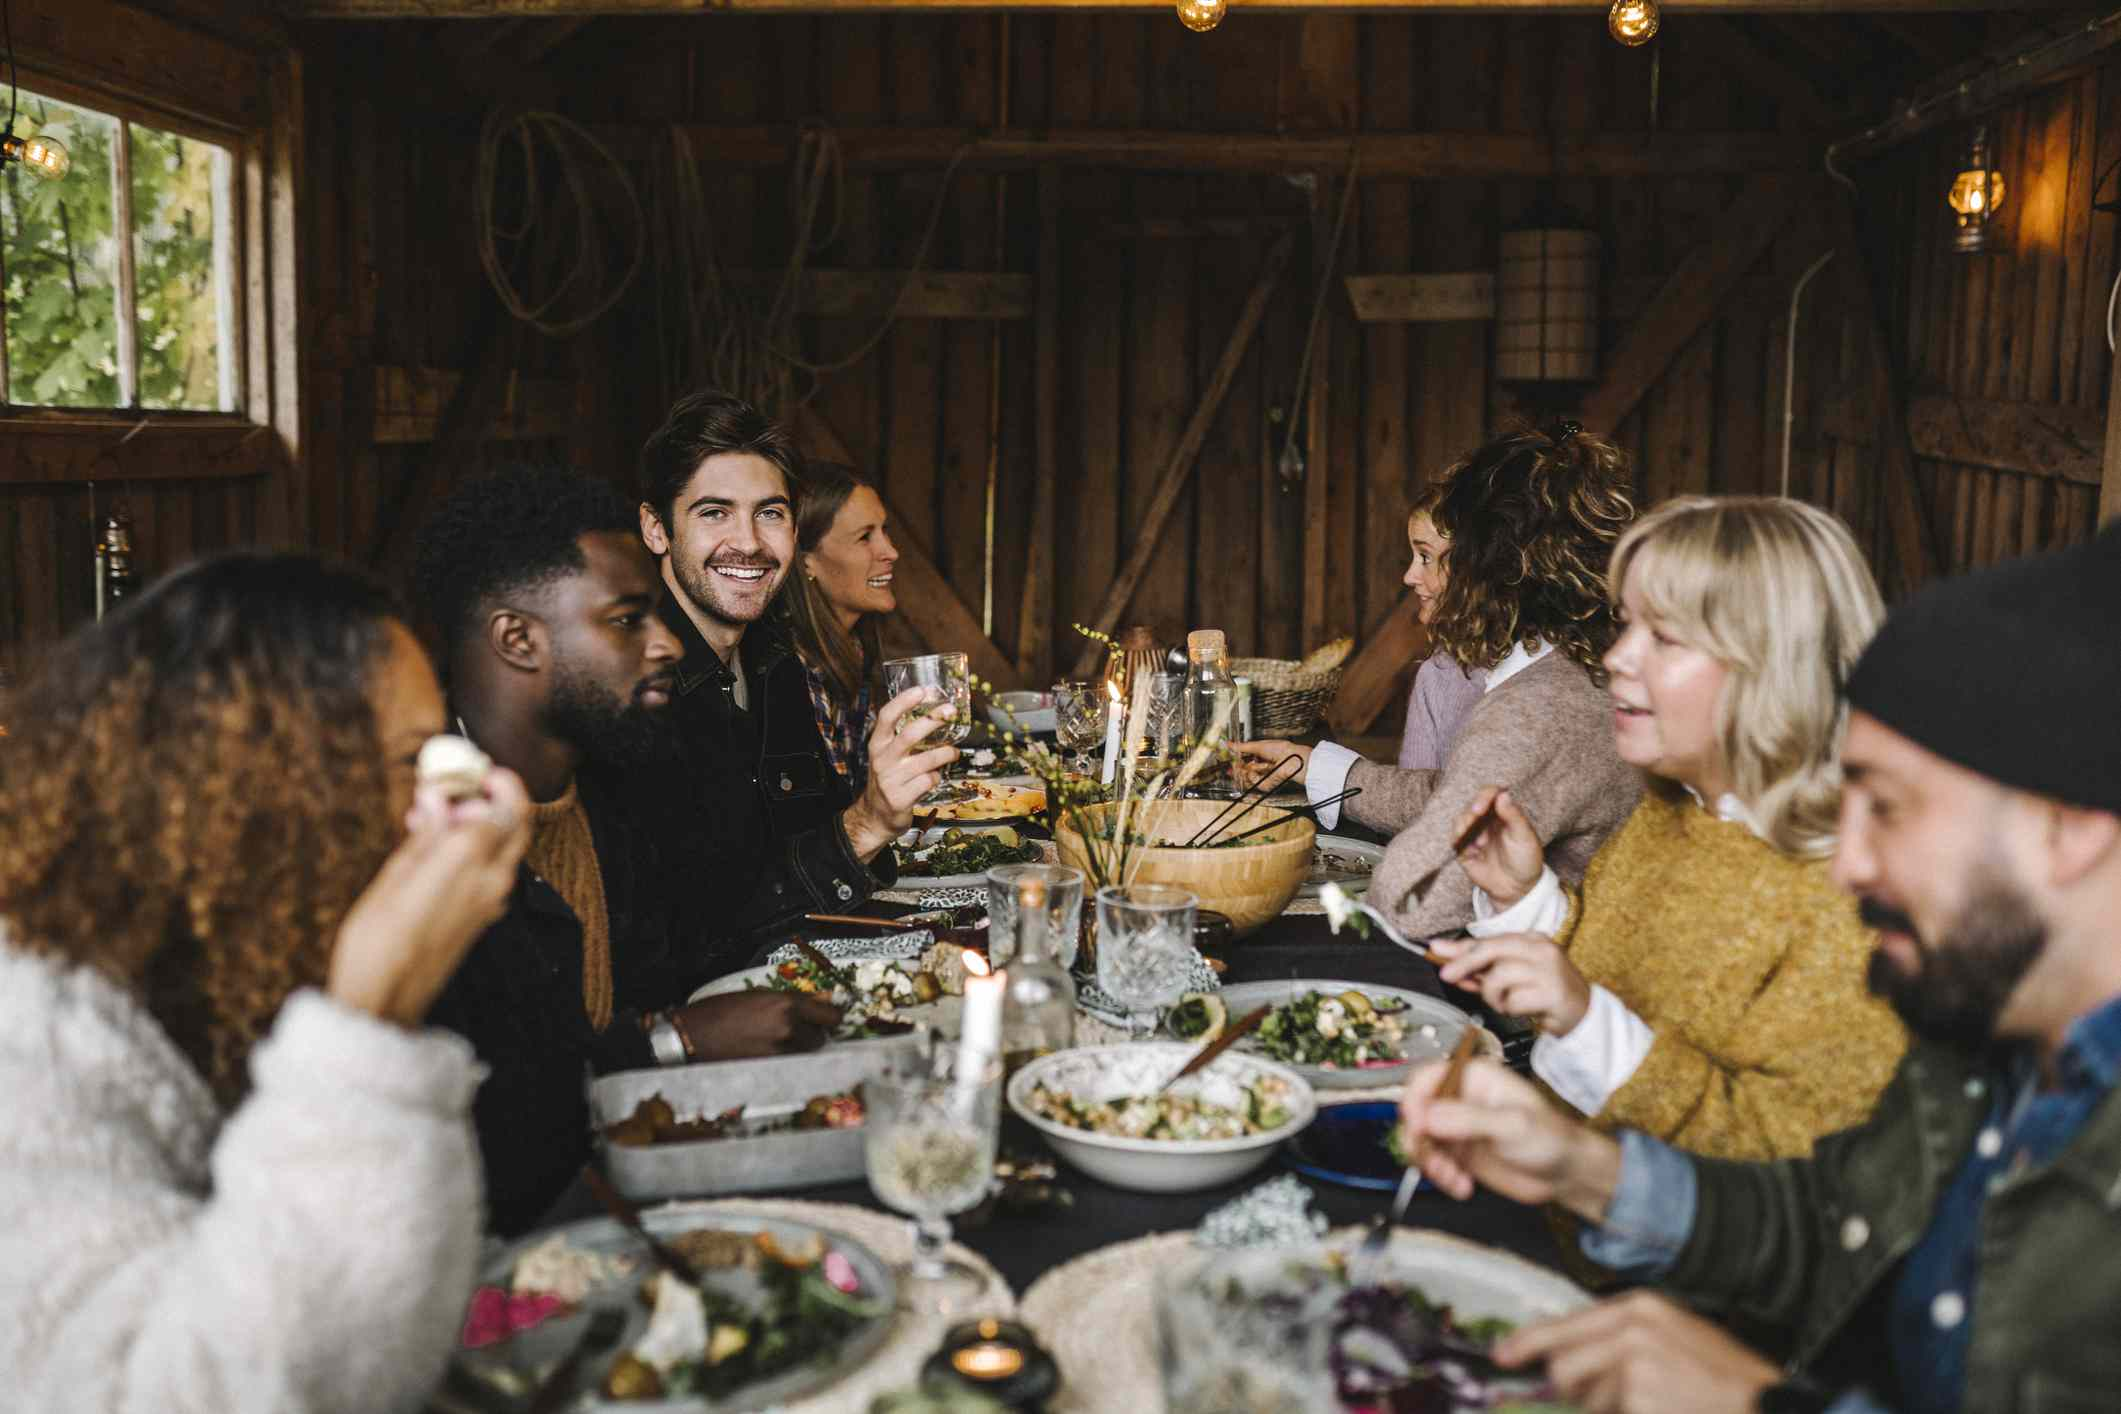 A group of people enjoying a rustic meal